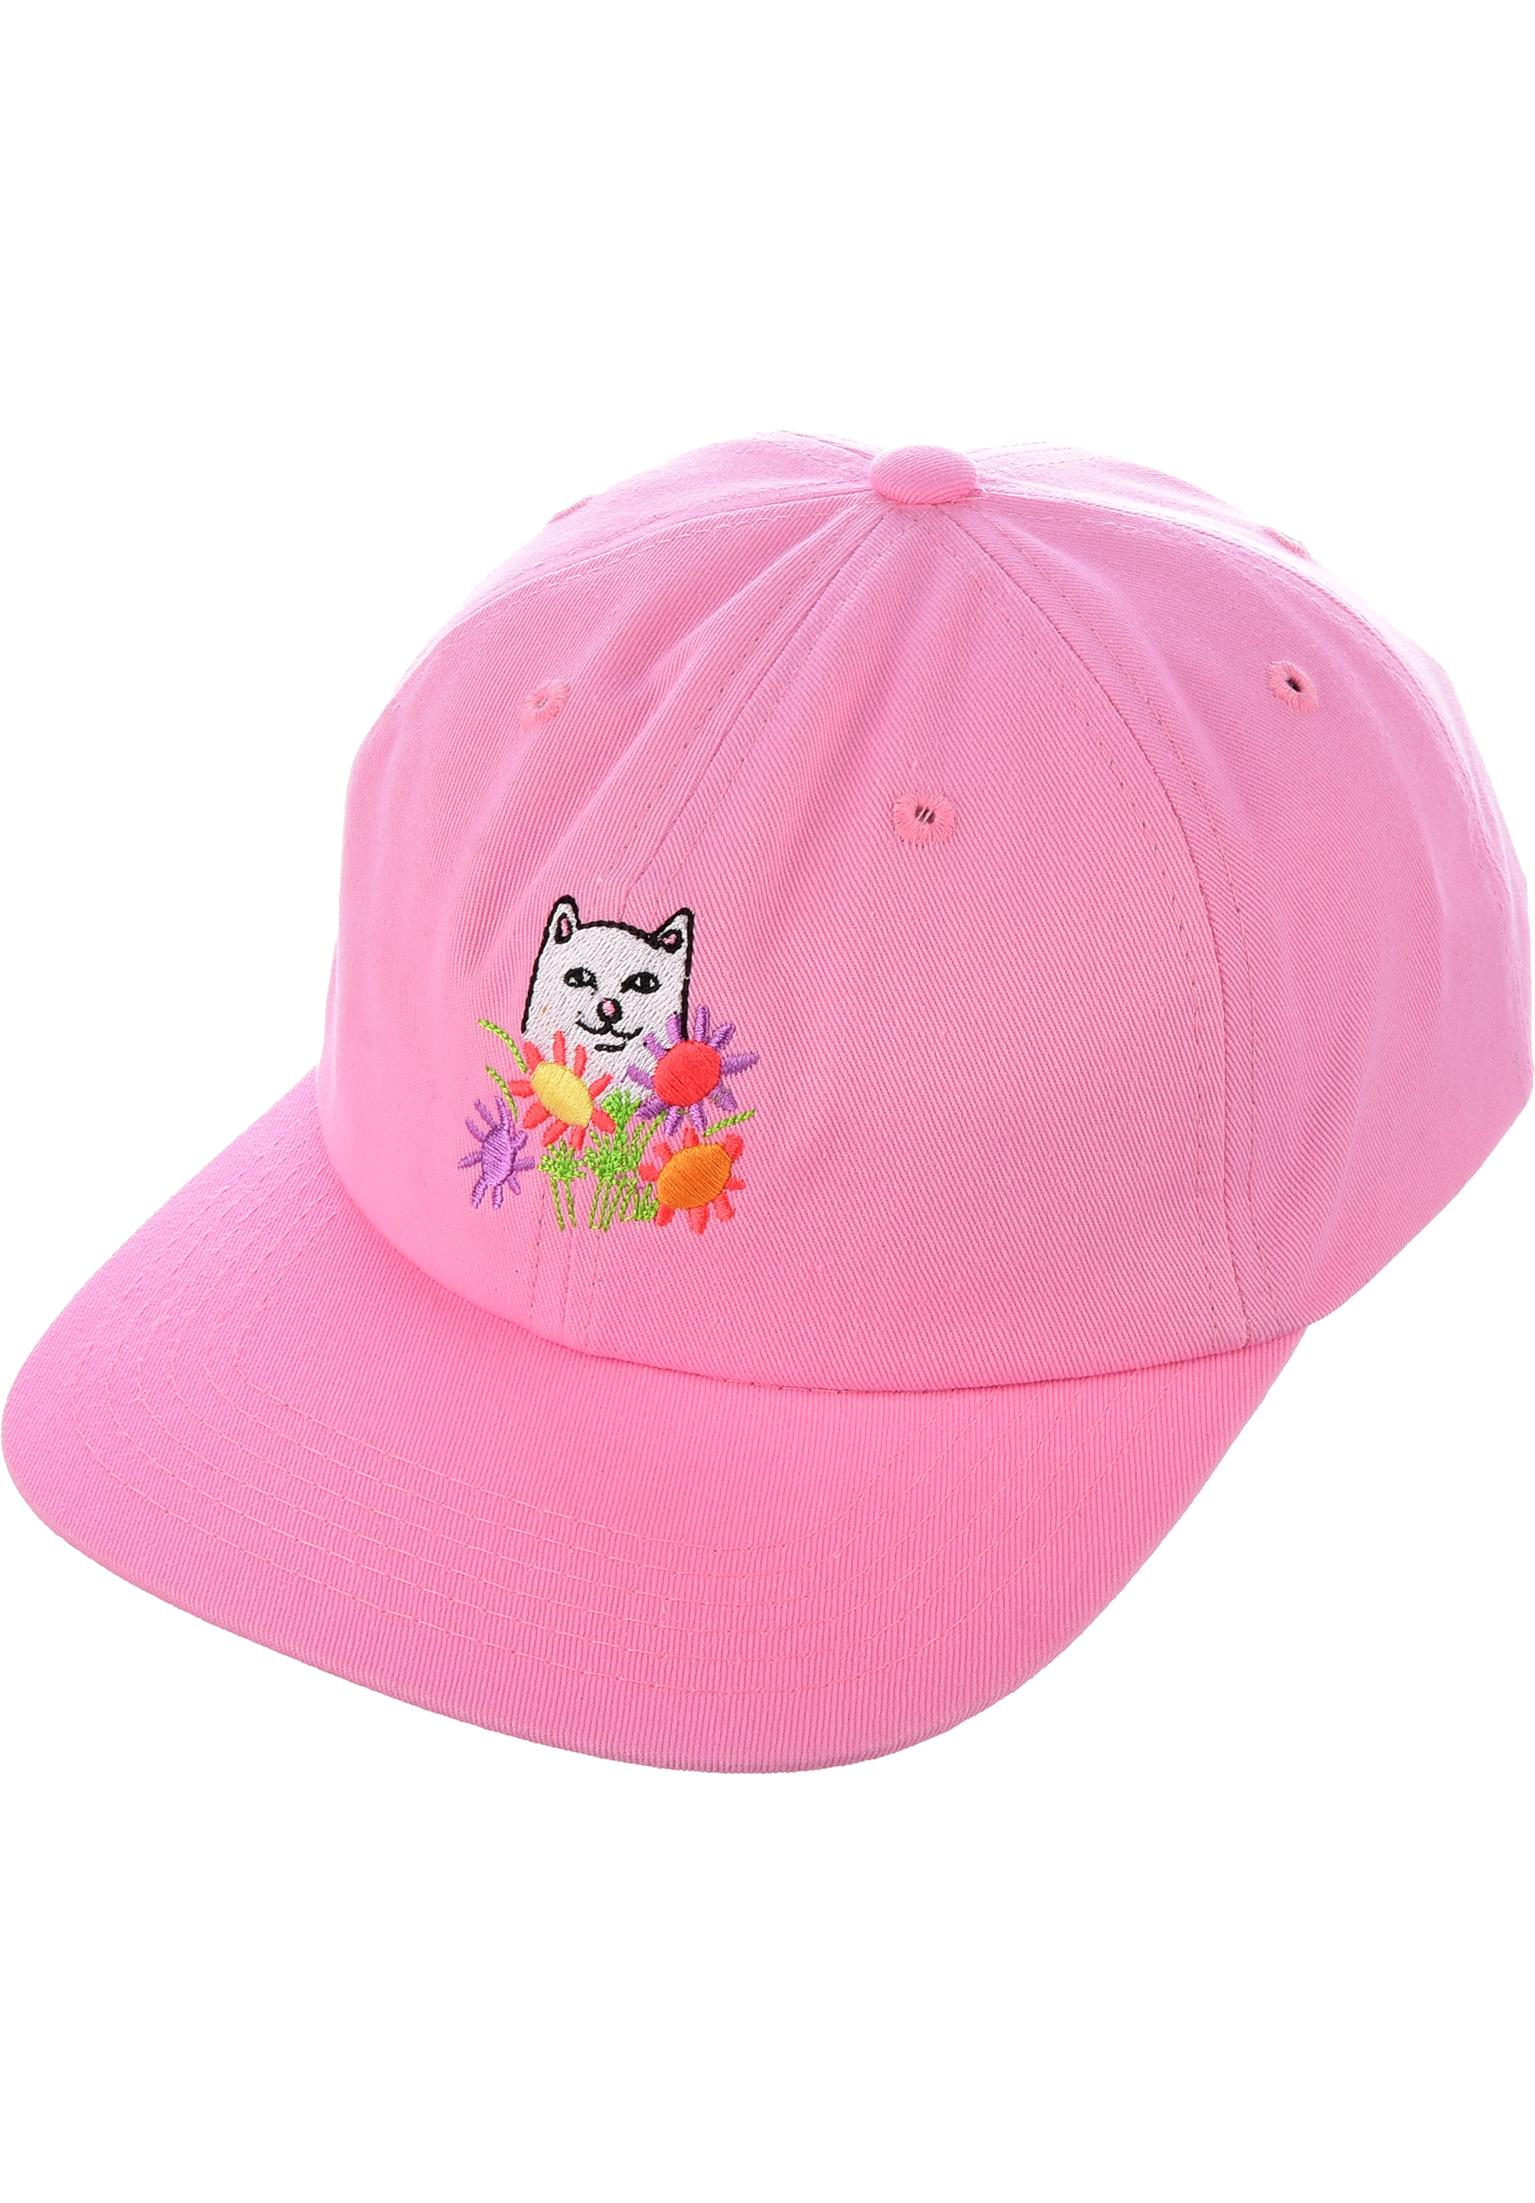 f3cb8281c21 Nermcasso Strapback Rip N Dip Caps in pink for Men